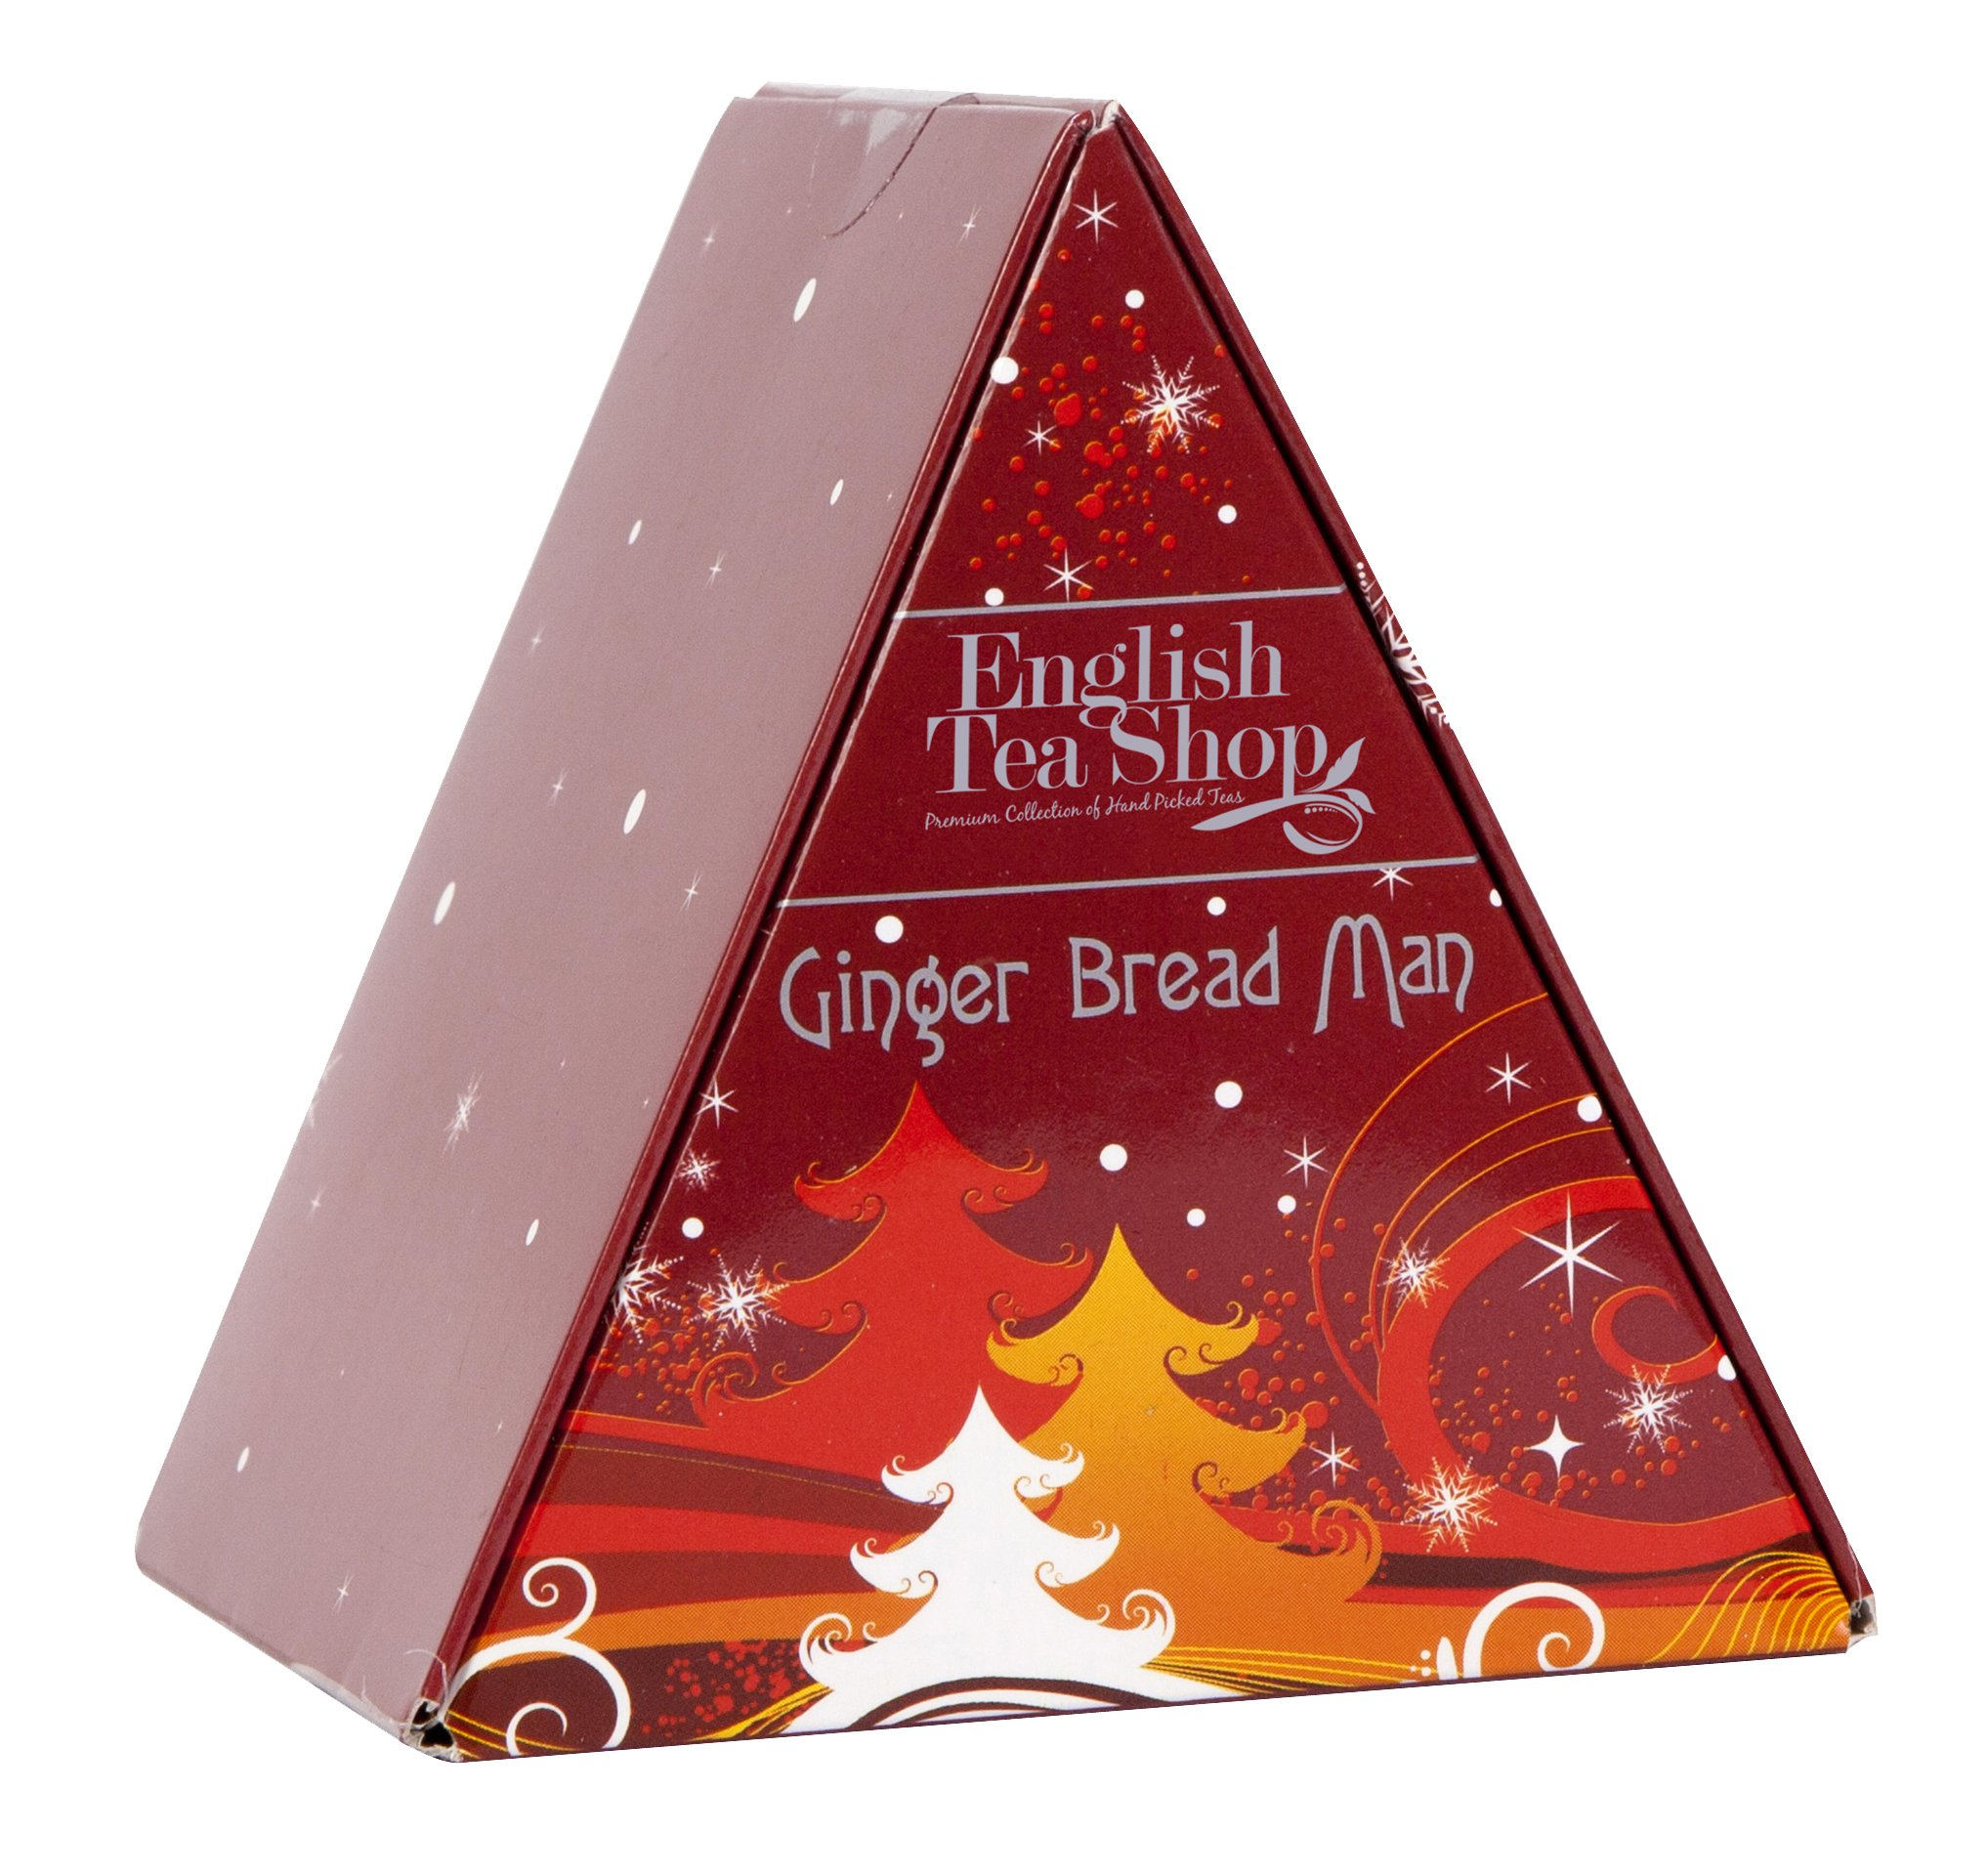 English Tea Shop Ginger Bread Man Nylon Pyramid, 12 Gram